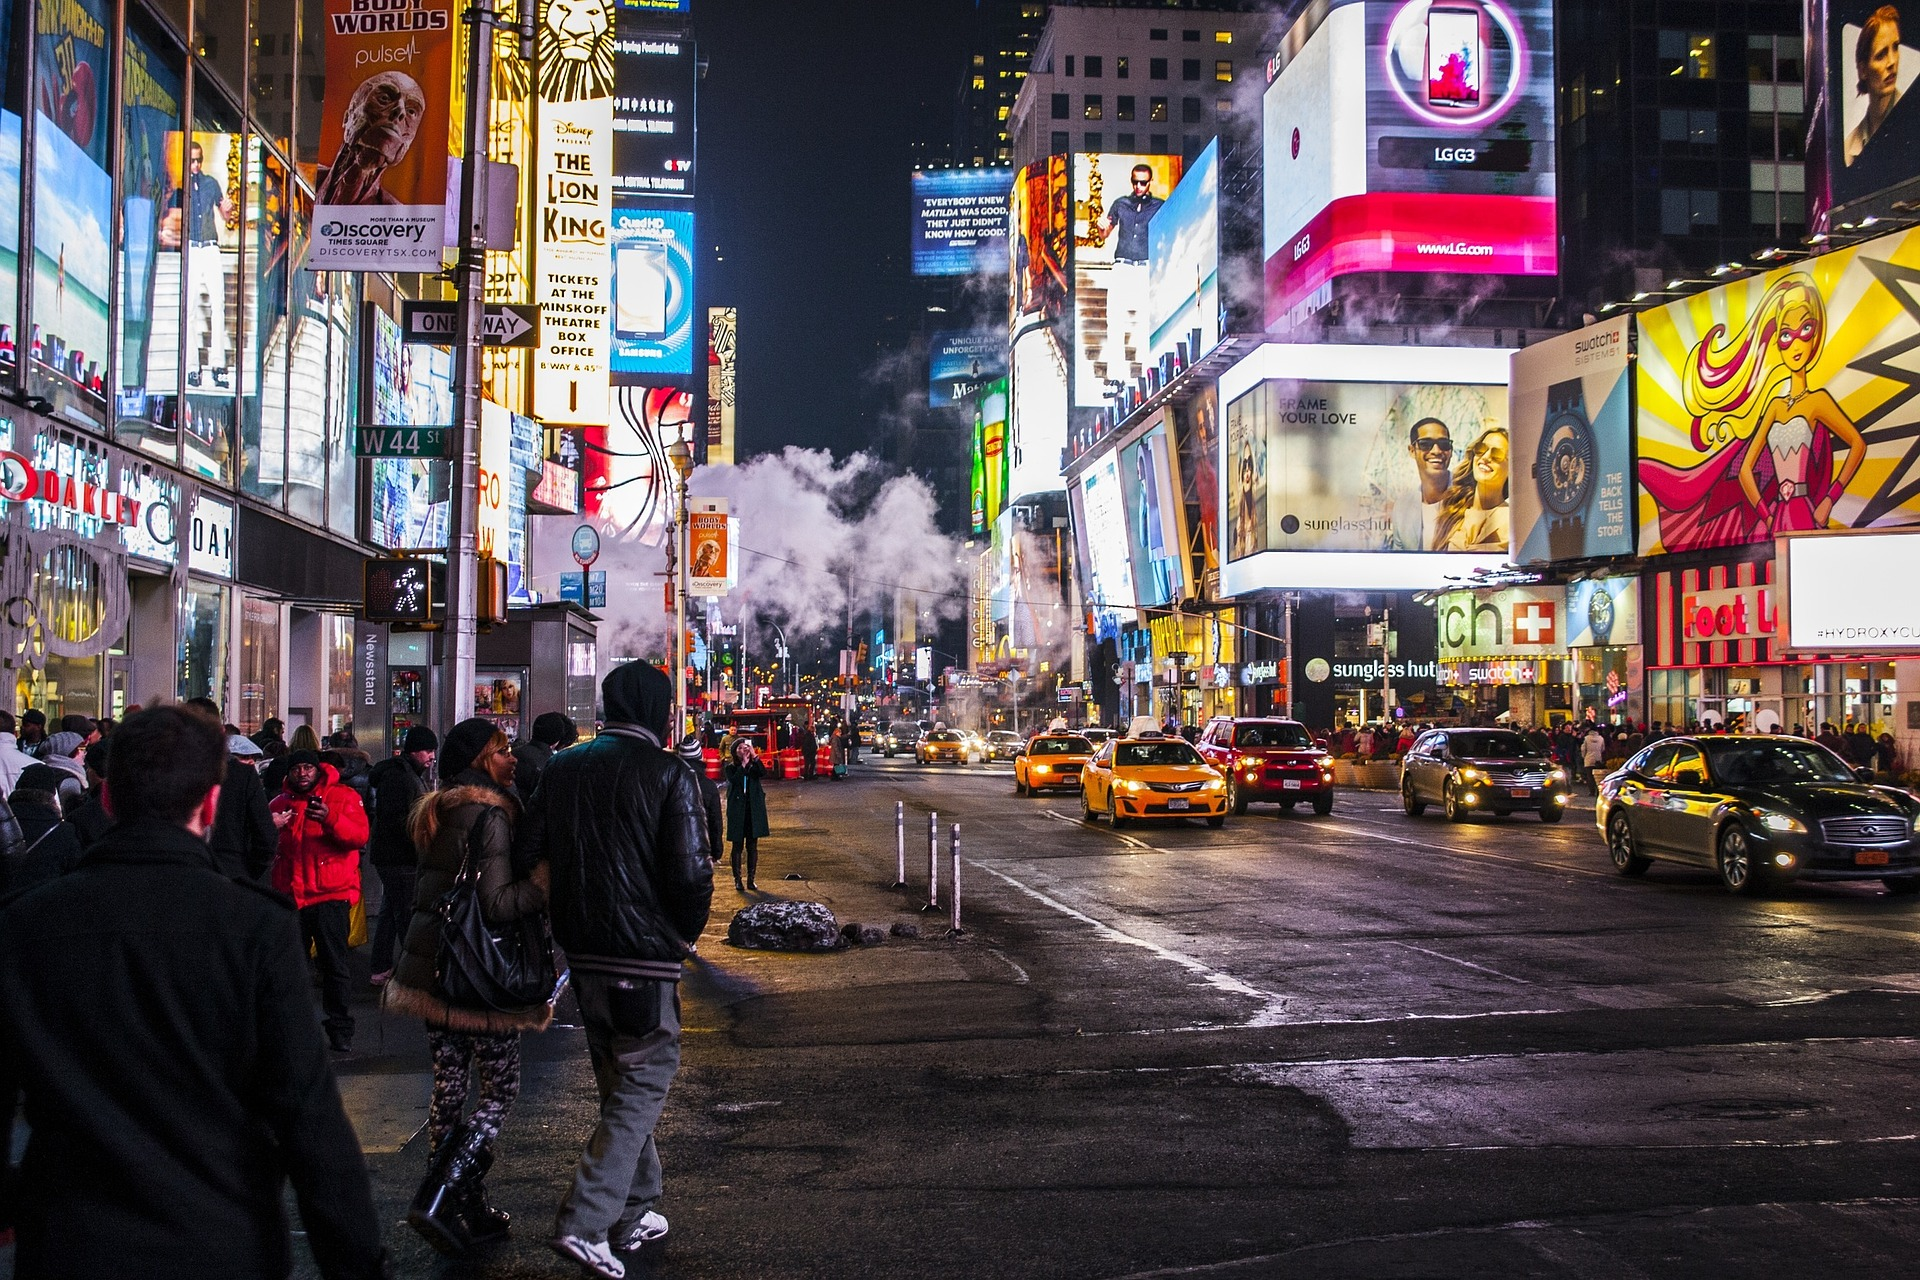 Busy street at night